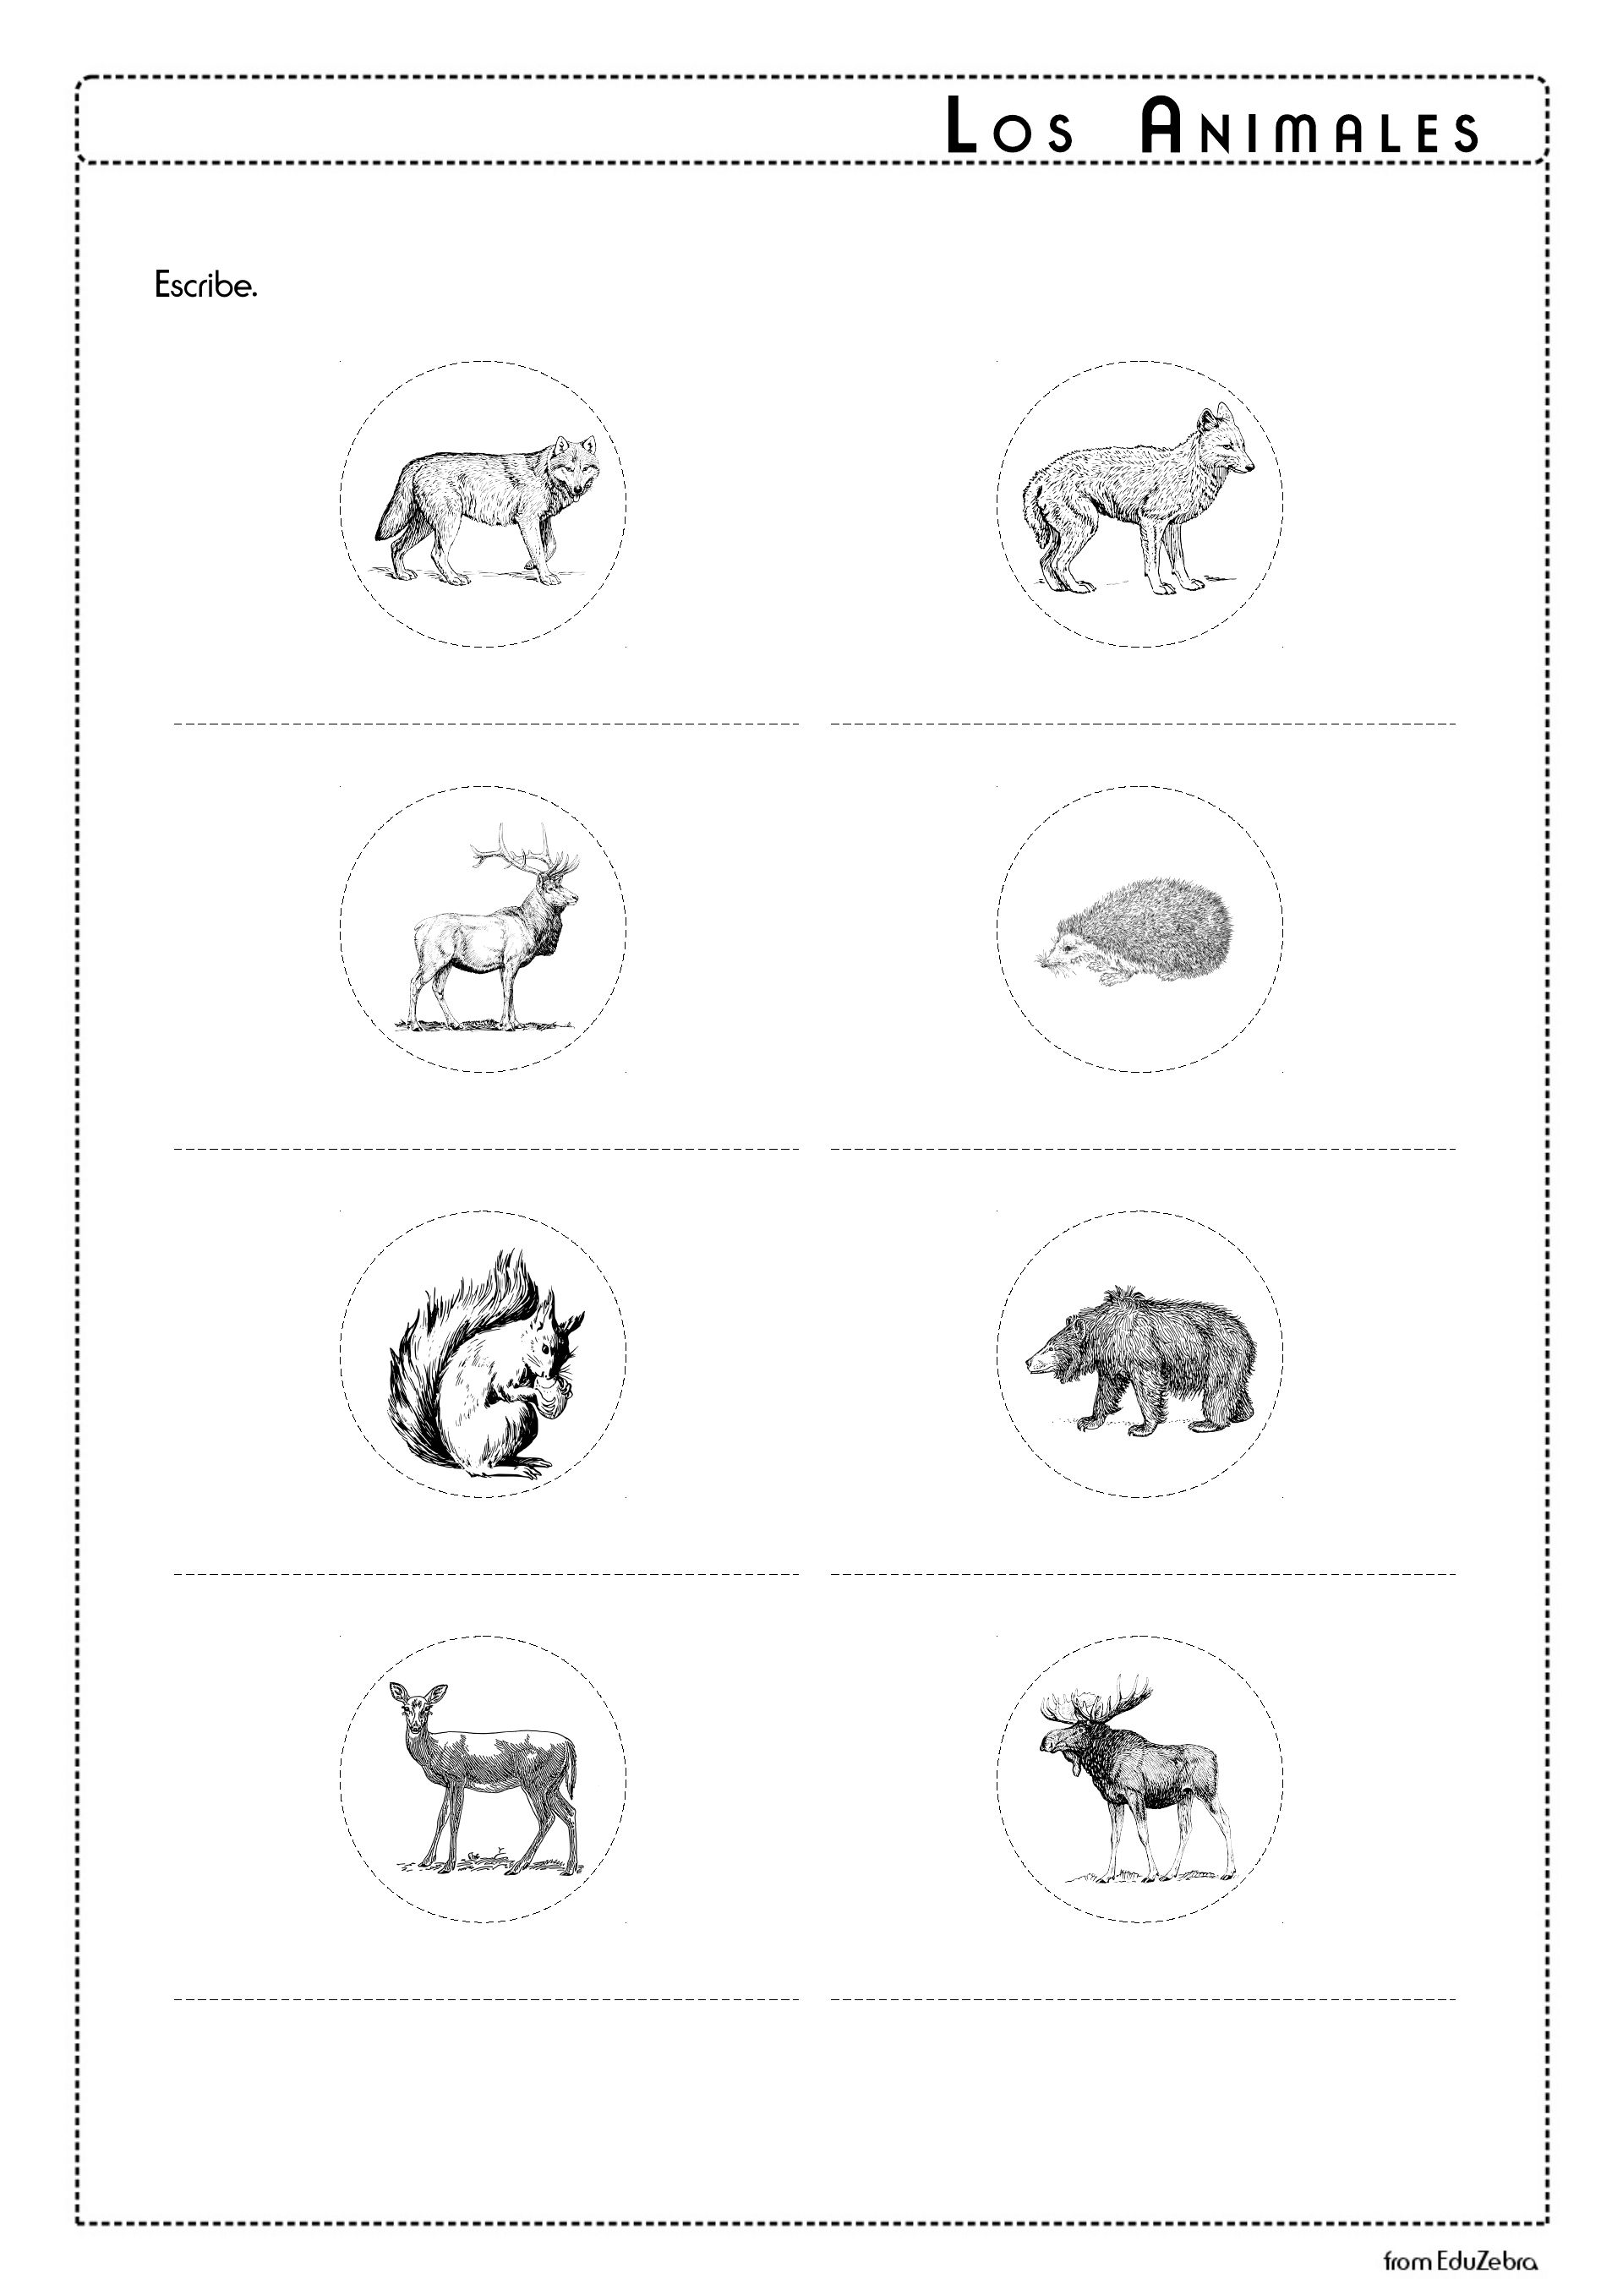 Forest Animals Los Animales Dle Bosque Activity Pack Spanish Worksheets Spanish Lessons For Kids Learning Spanish For Kids [ 2716 x 1920 Pixel ]